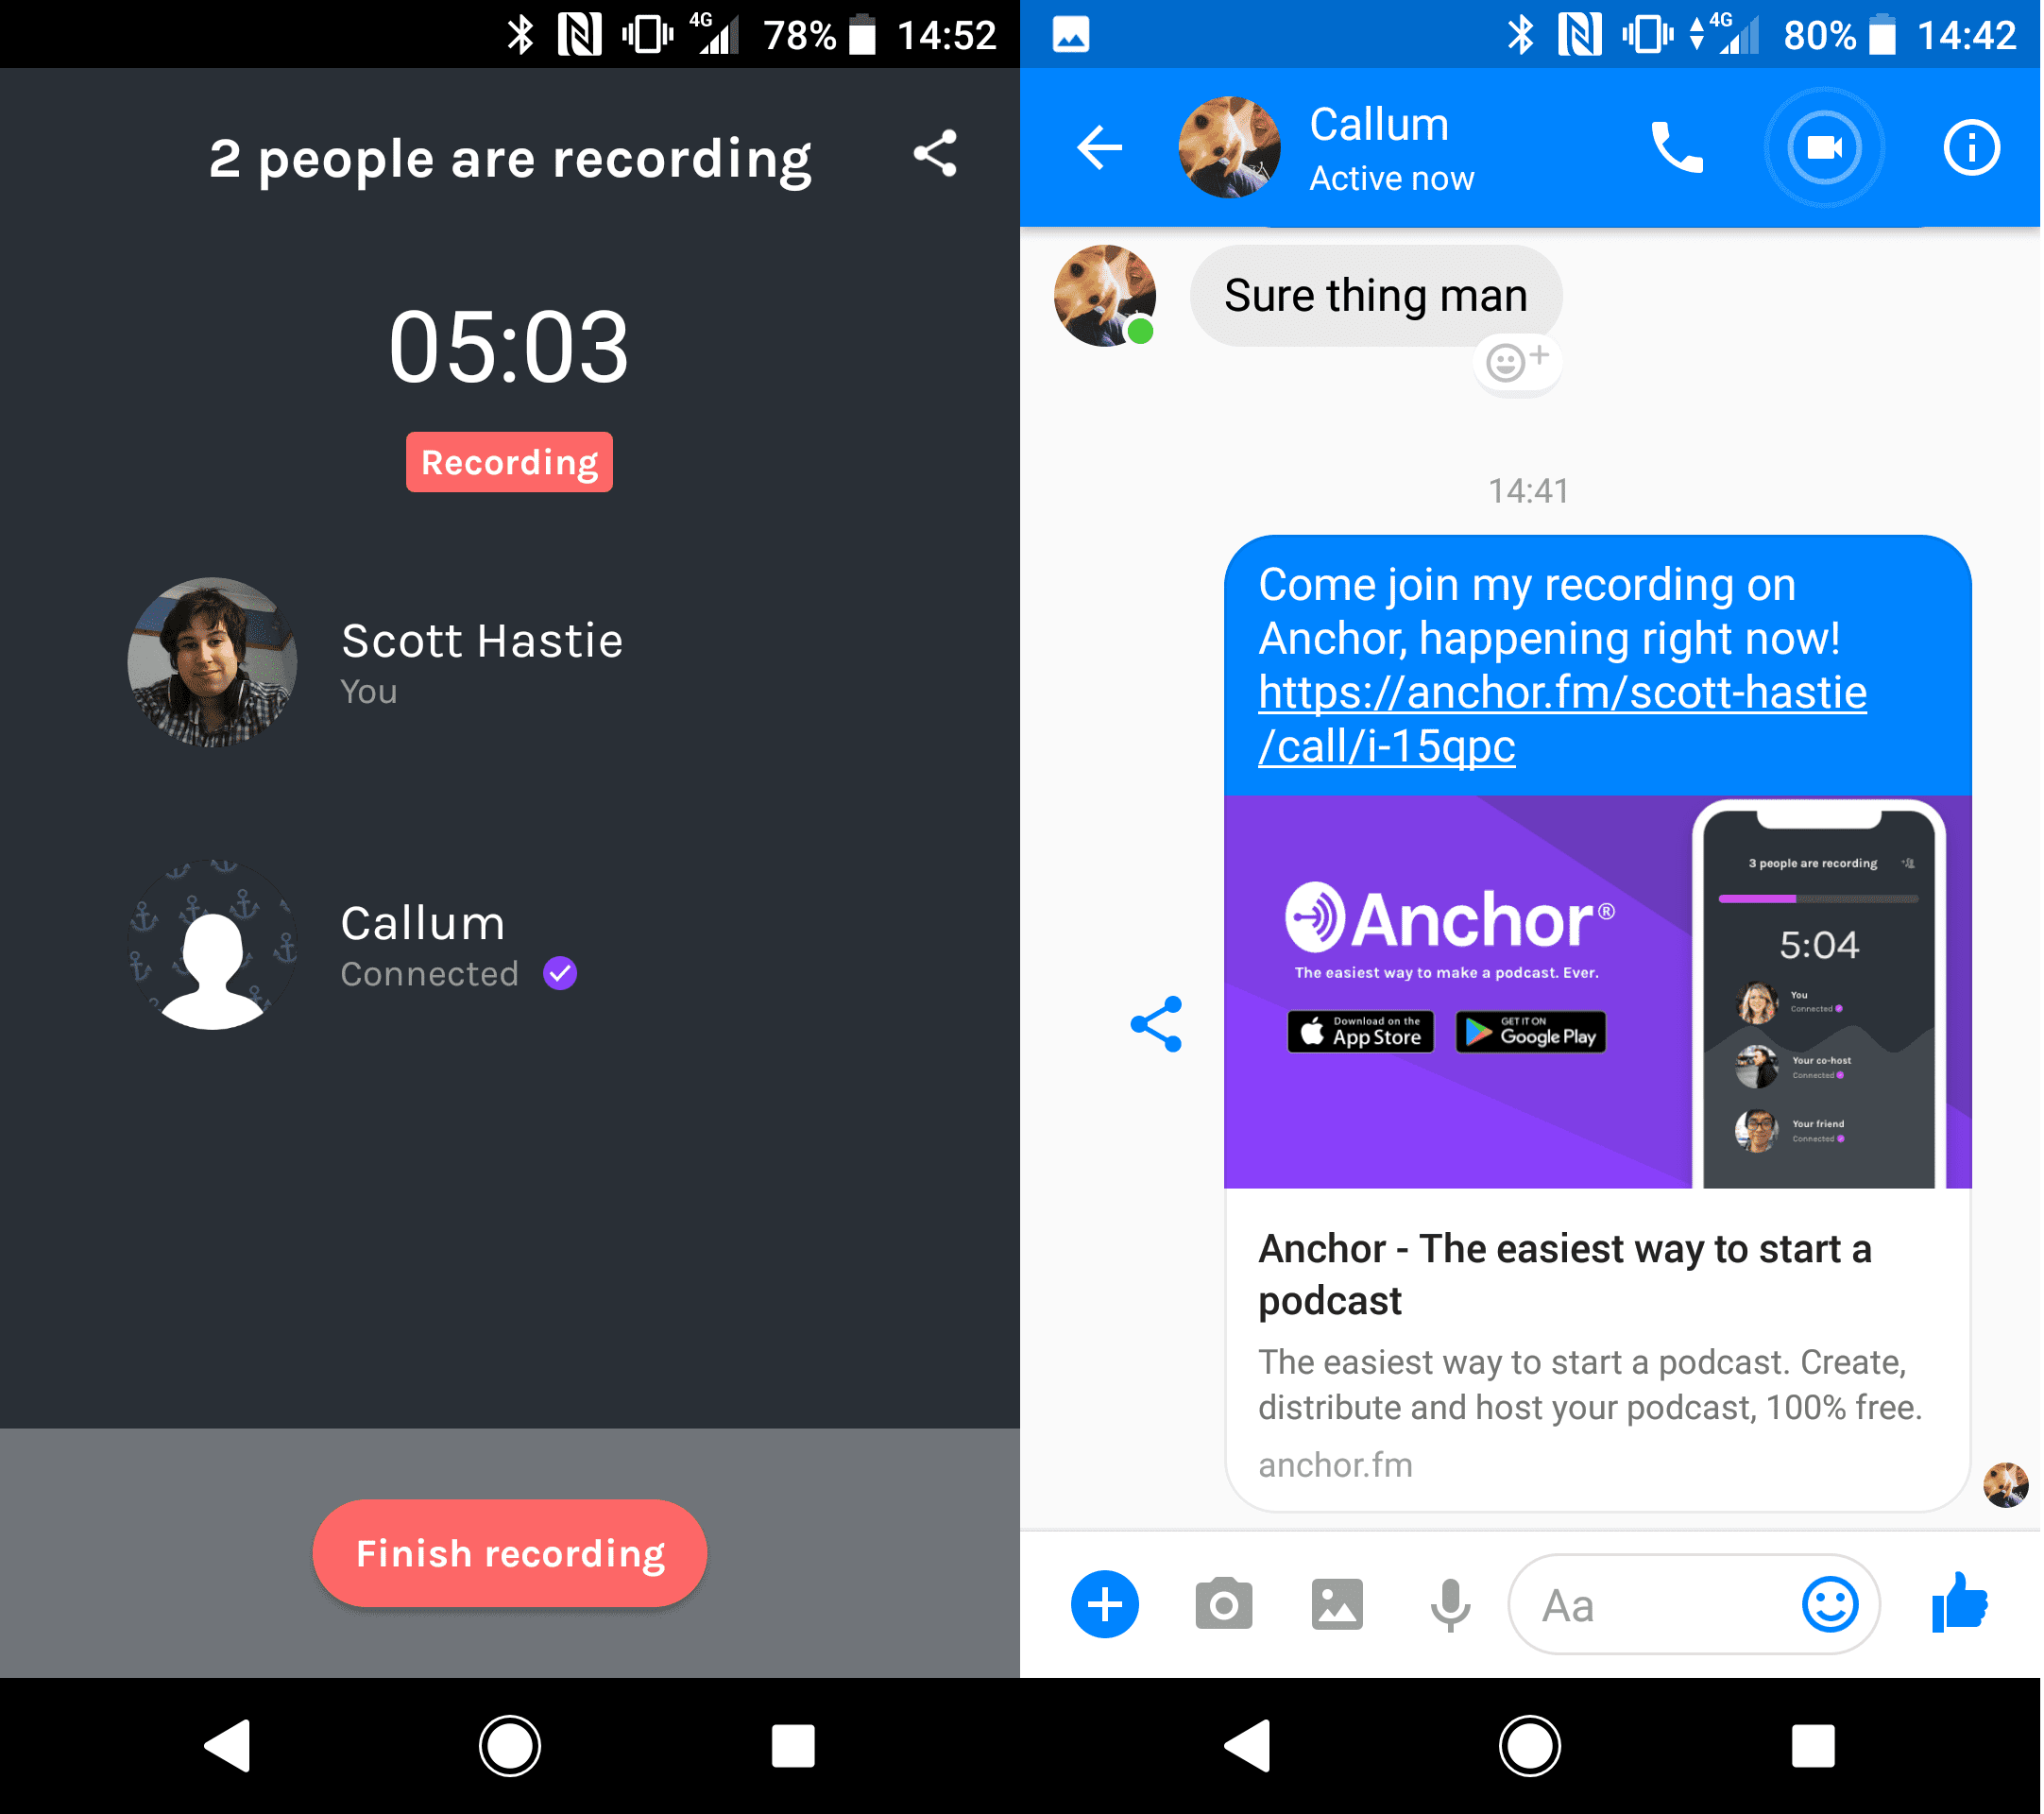 A screenshot of Anchor's recording with friends functionality